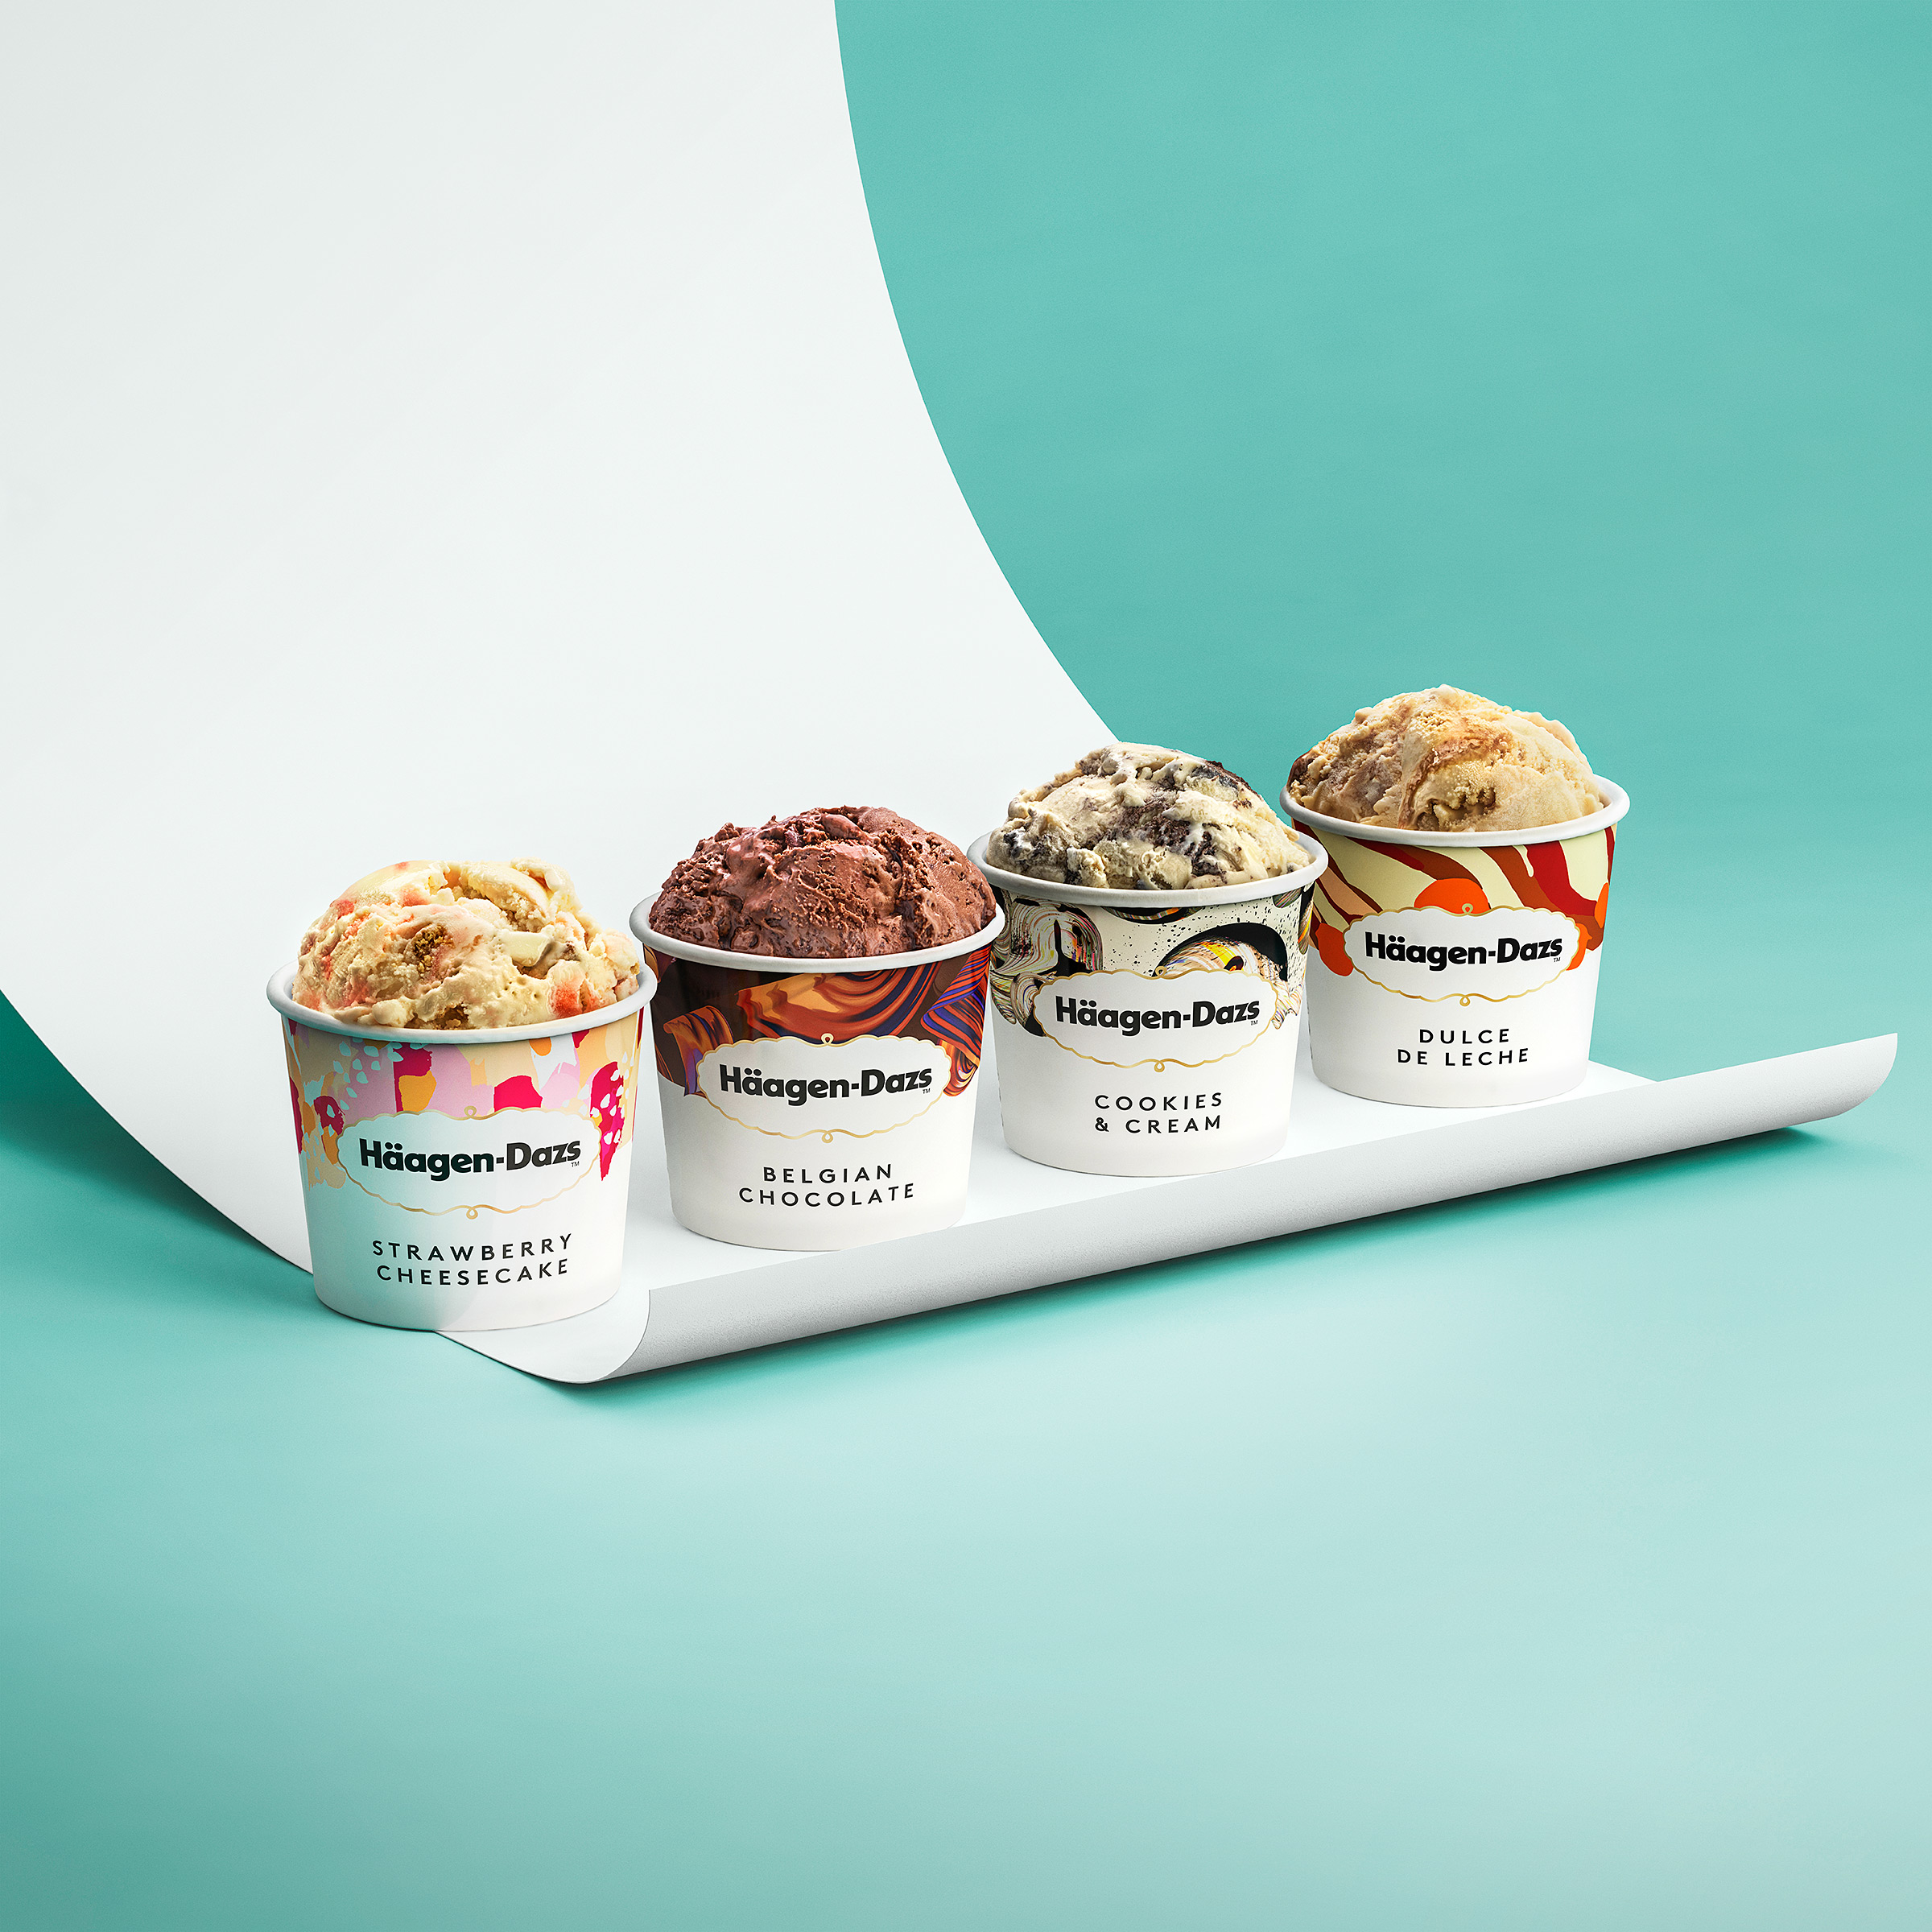 HaagenDazs_Concept_01_w4_Full_Size_RGB